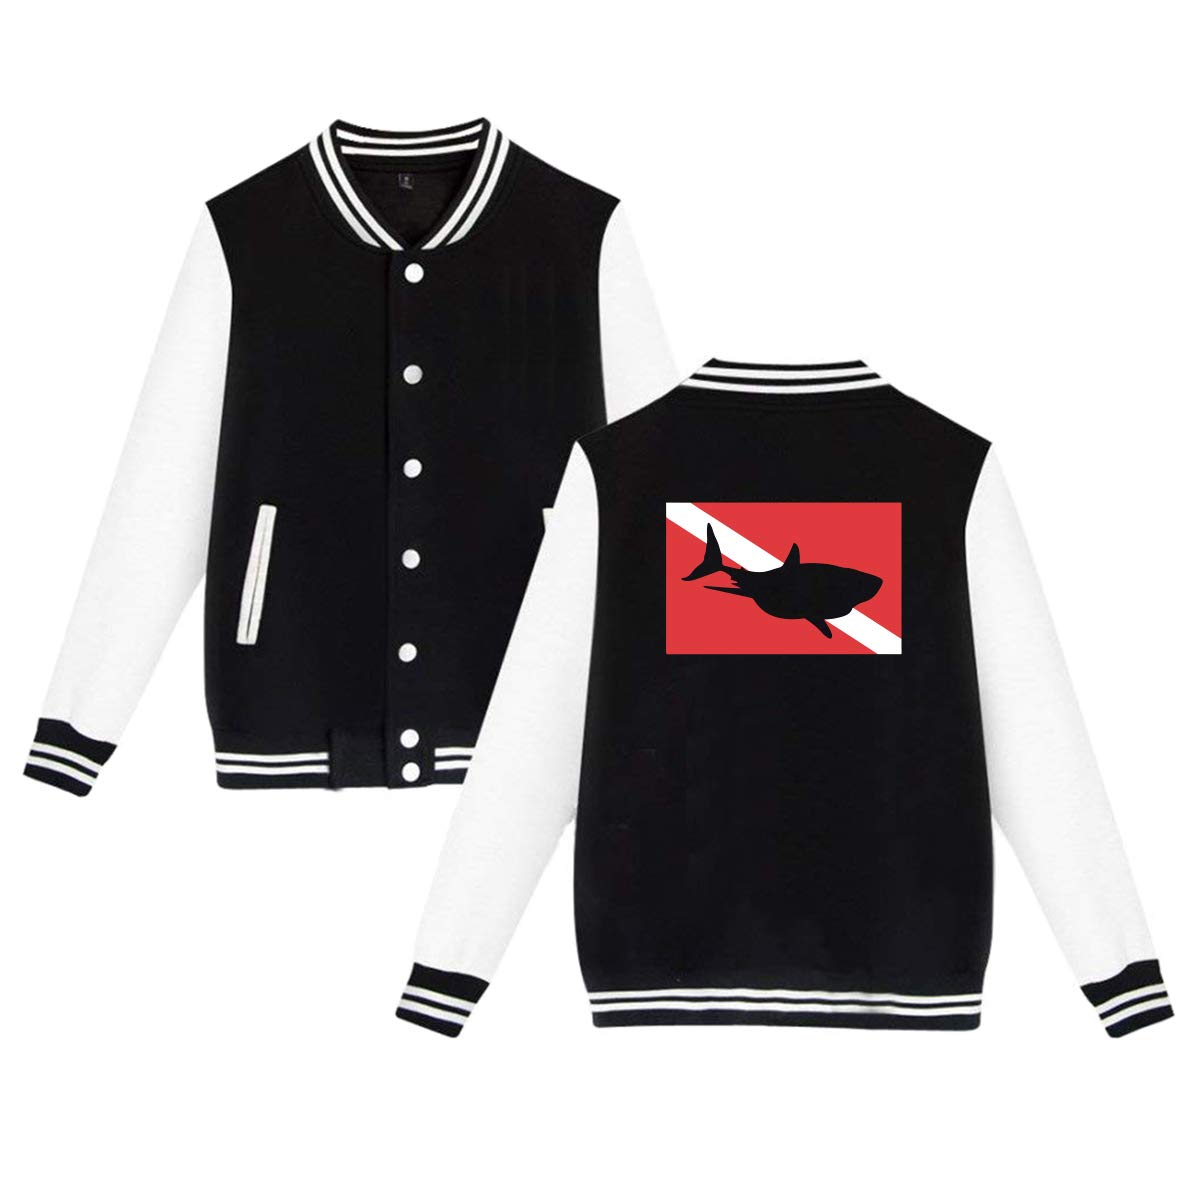 Scuba Diving Shark Baseball Jacket Uniform Unisex Sweater Coat